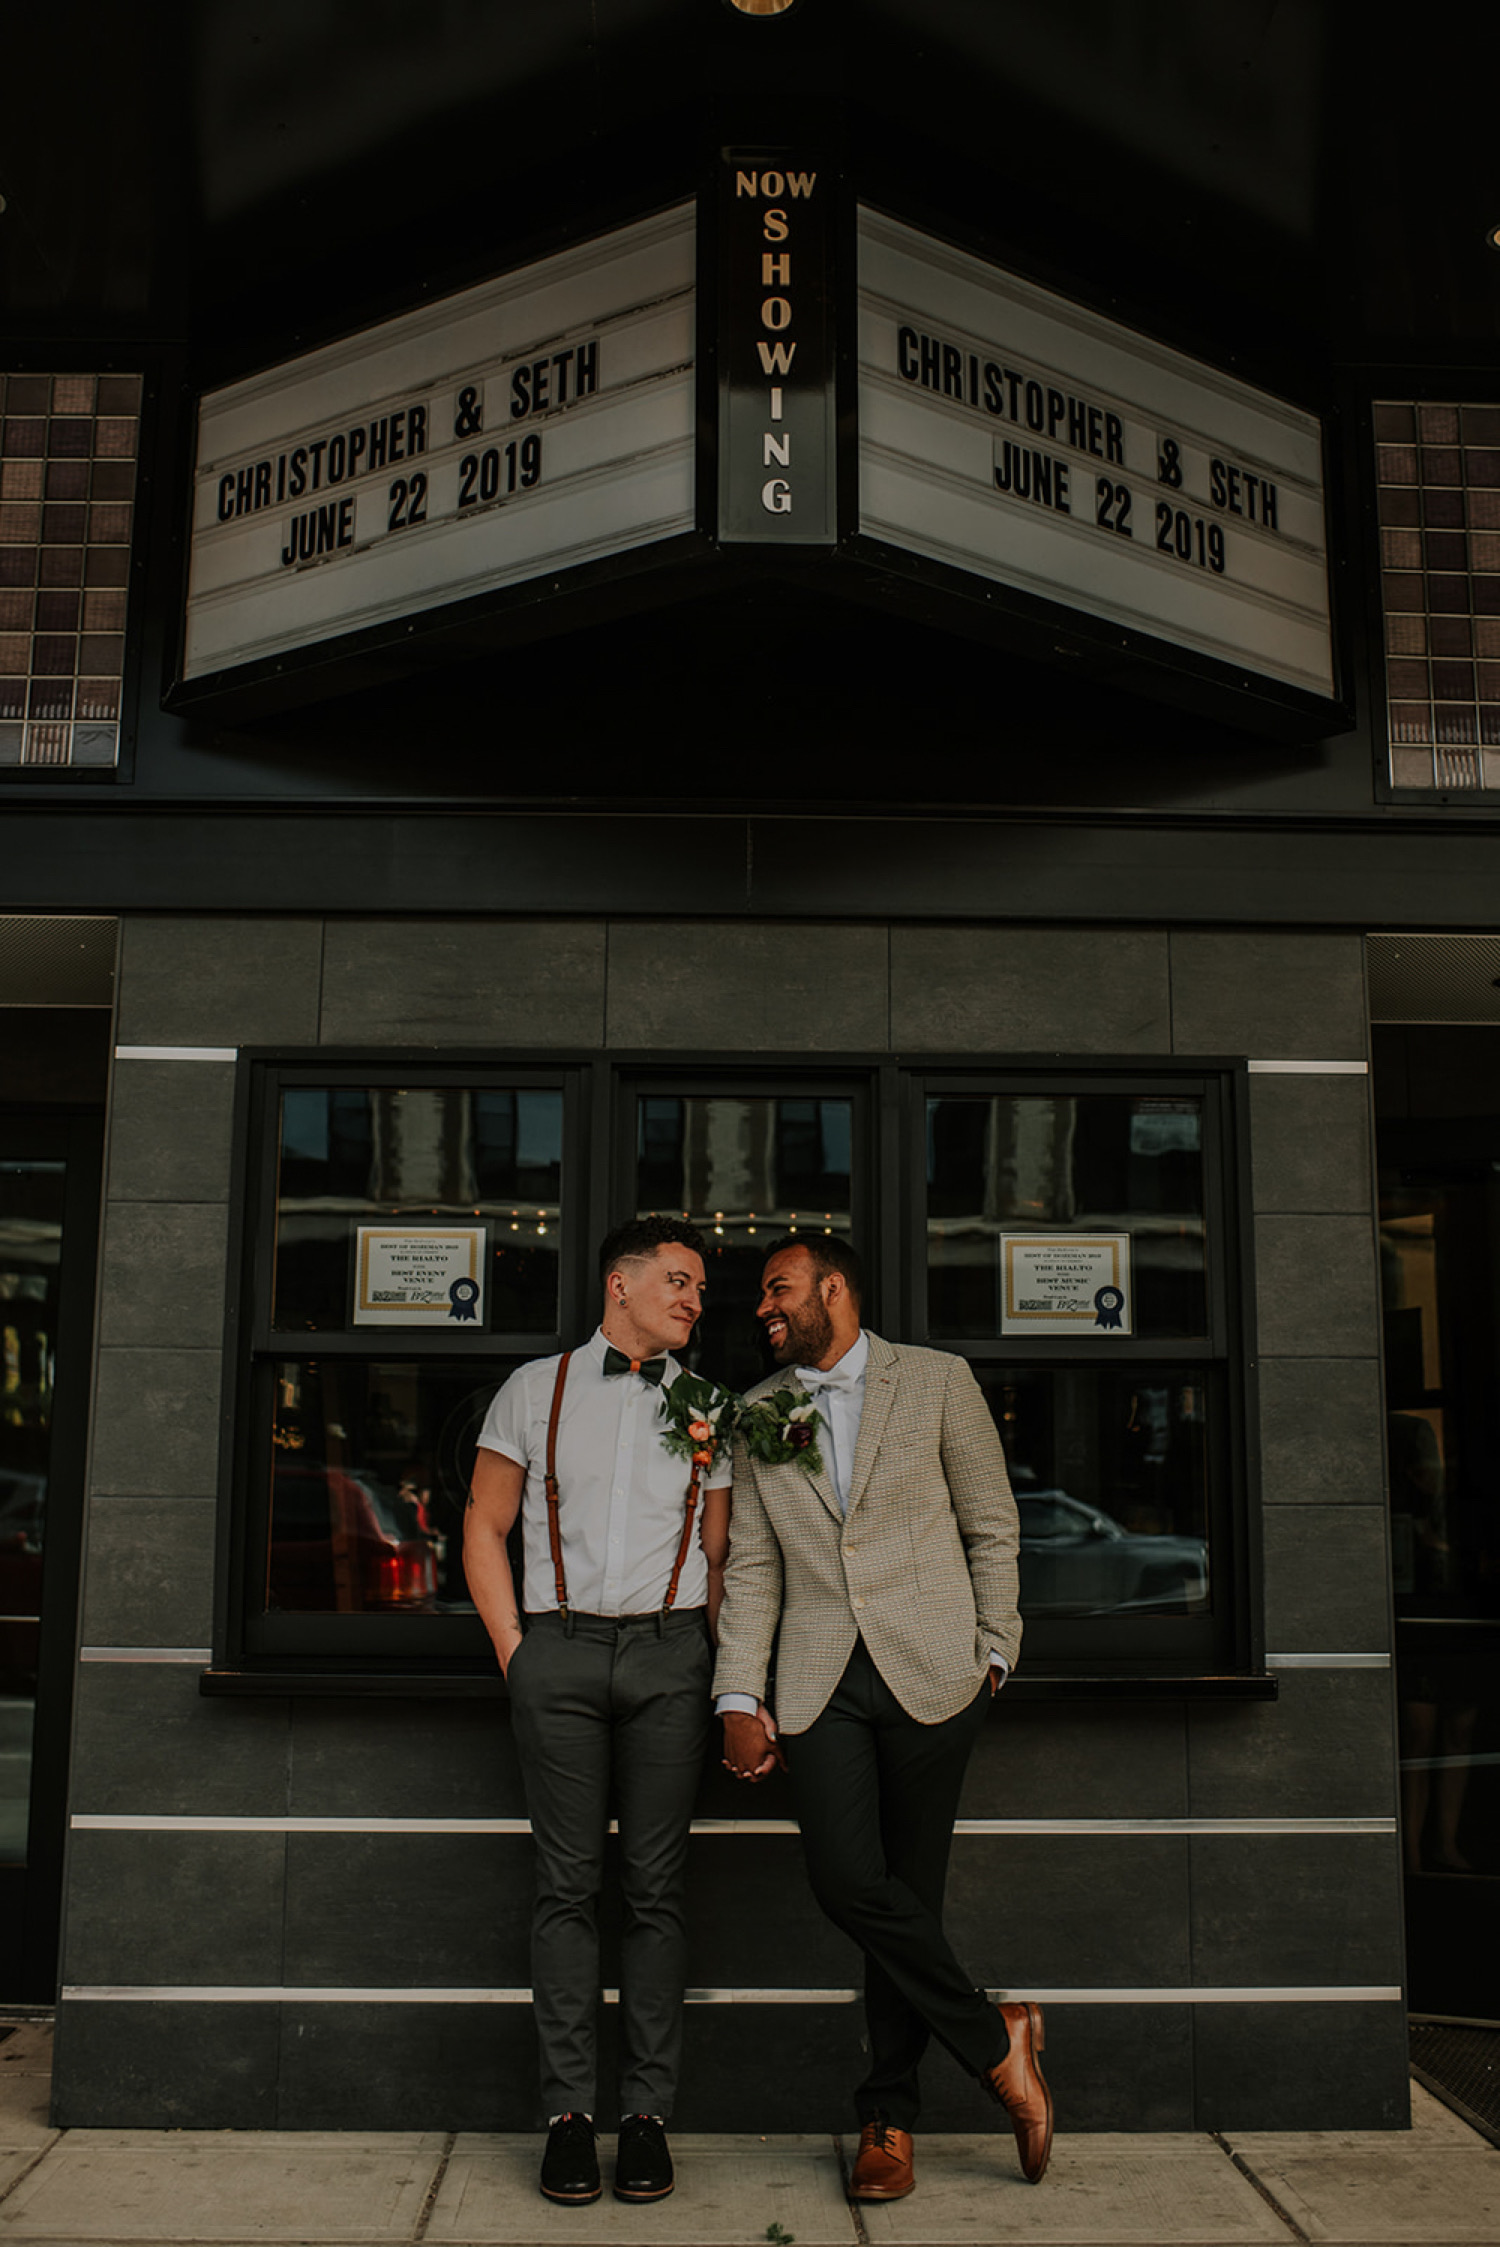 A wedding couple is holding hands and standing in front of the Rialto Bozeman wedding venue.